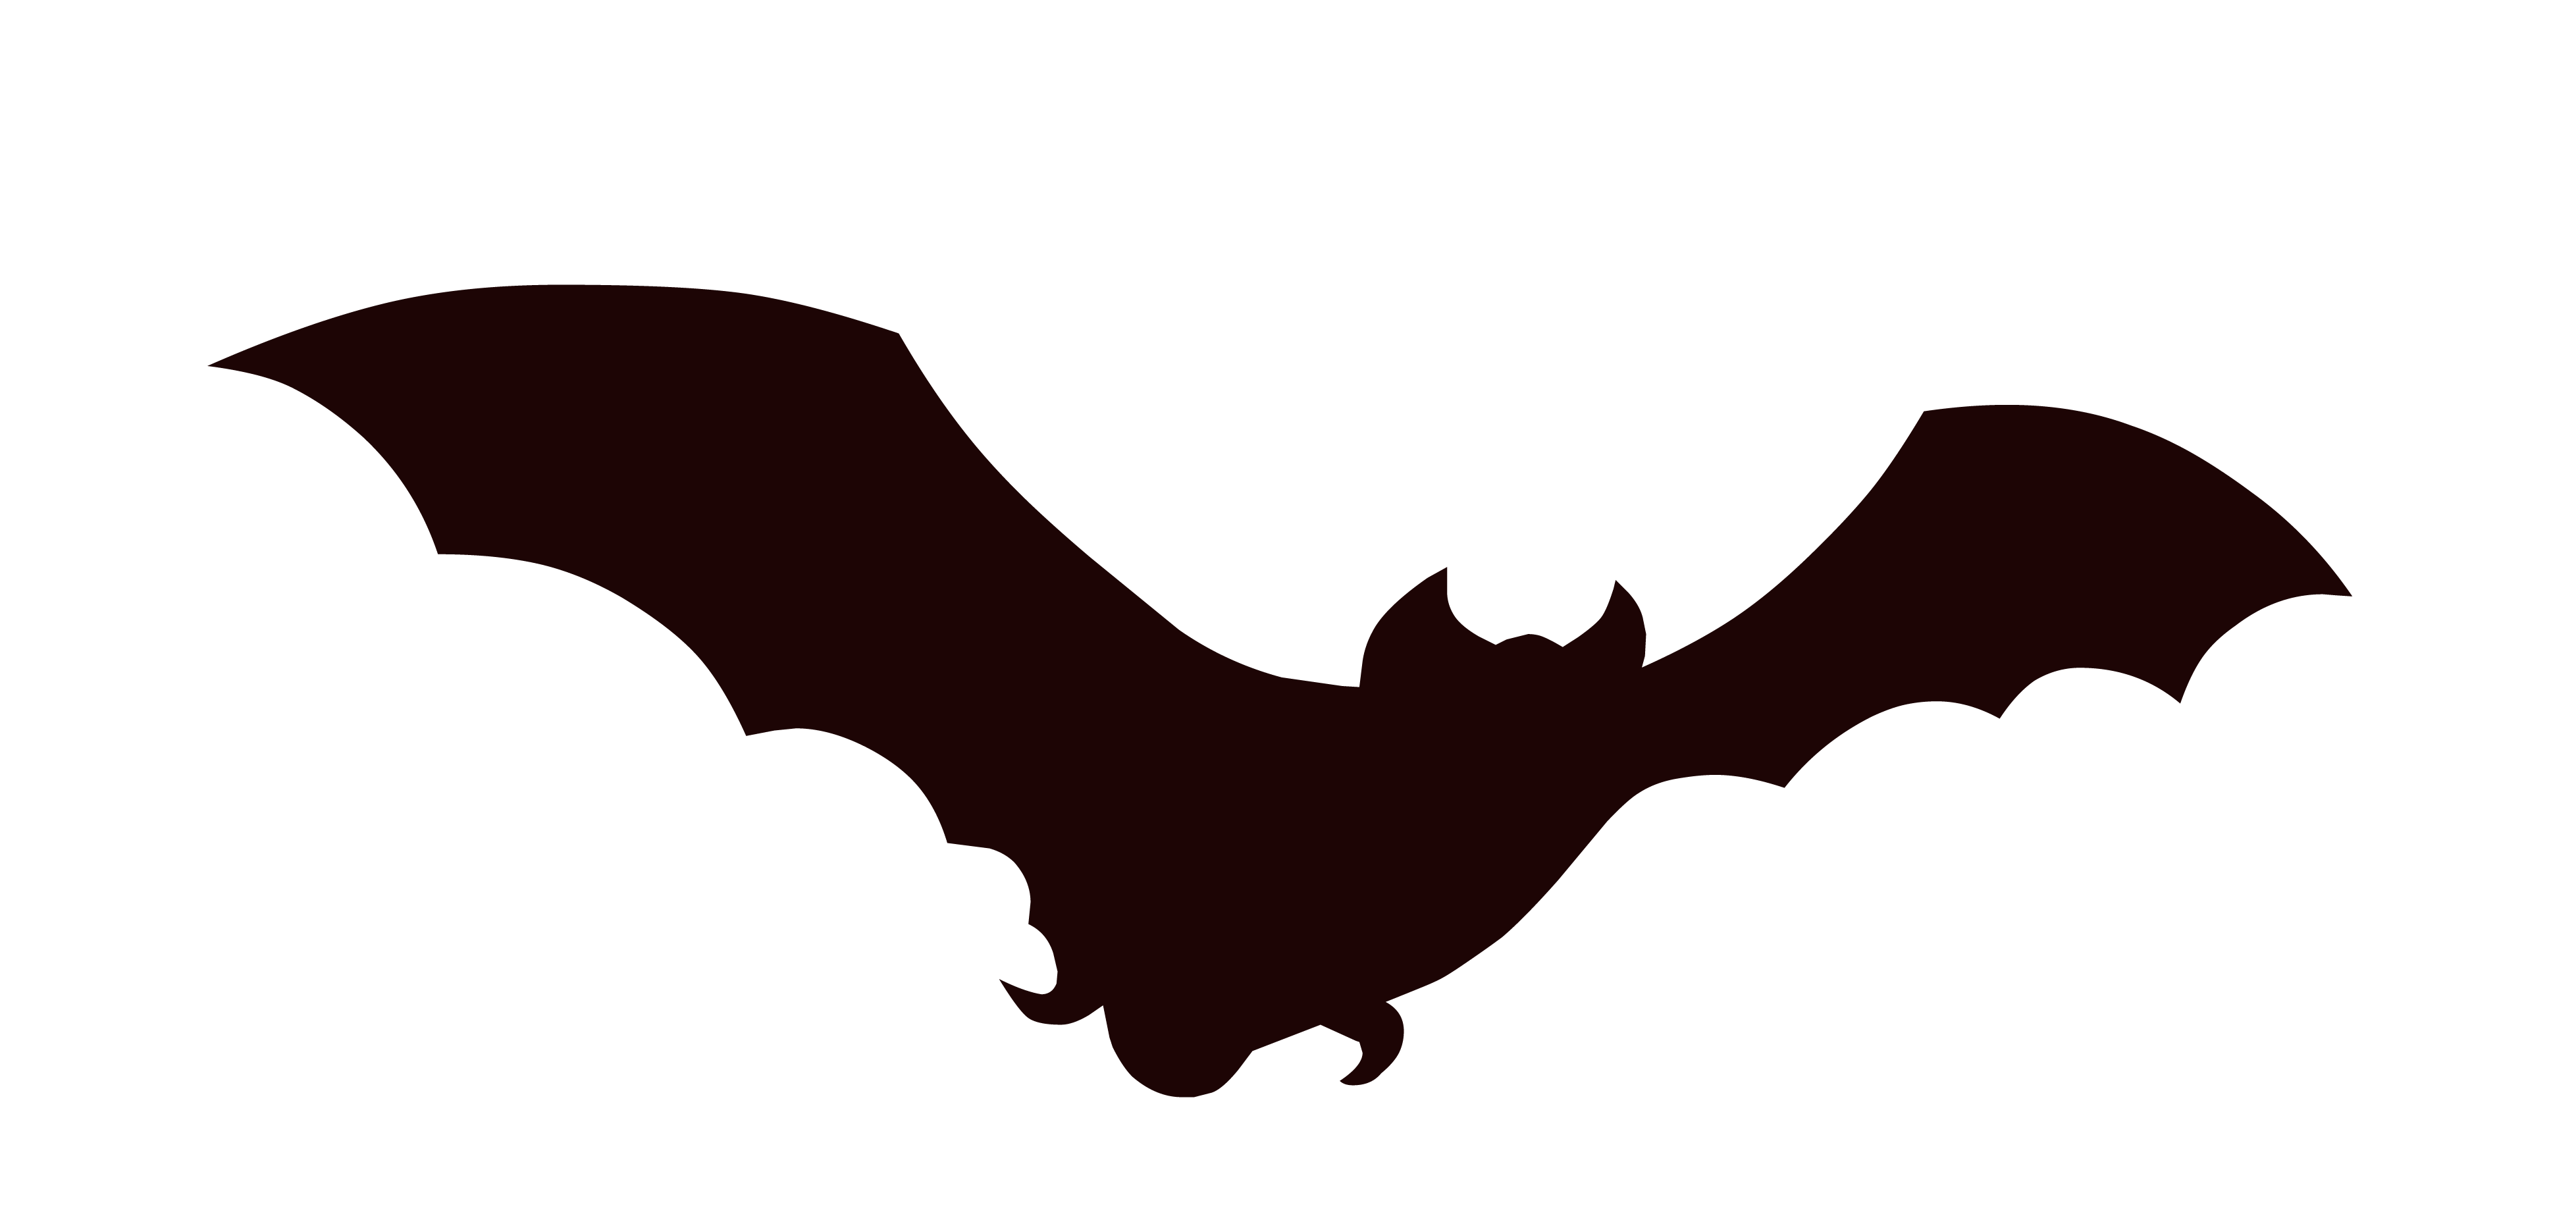 bat silhouette clip art at getdrawings com free for personal use rh getdrawings com clipart basketball clipart bathroom